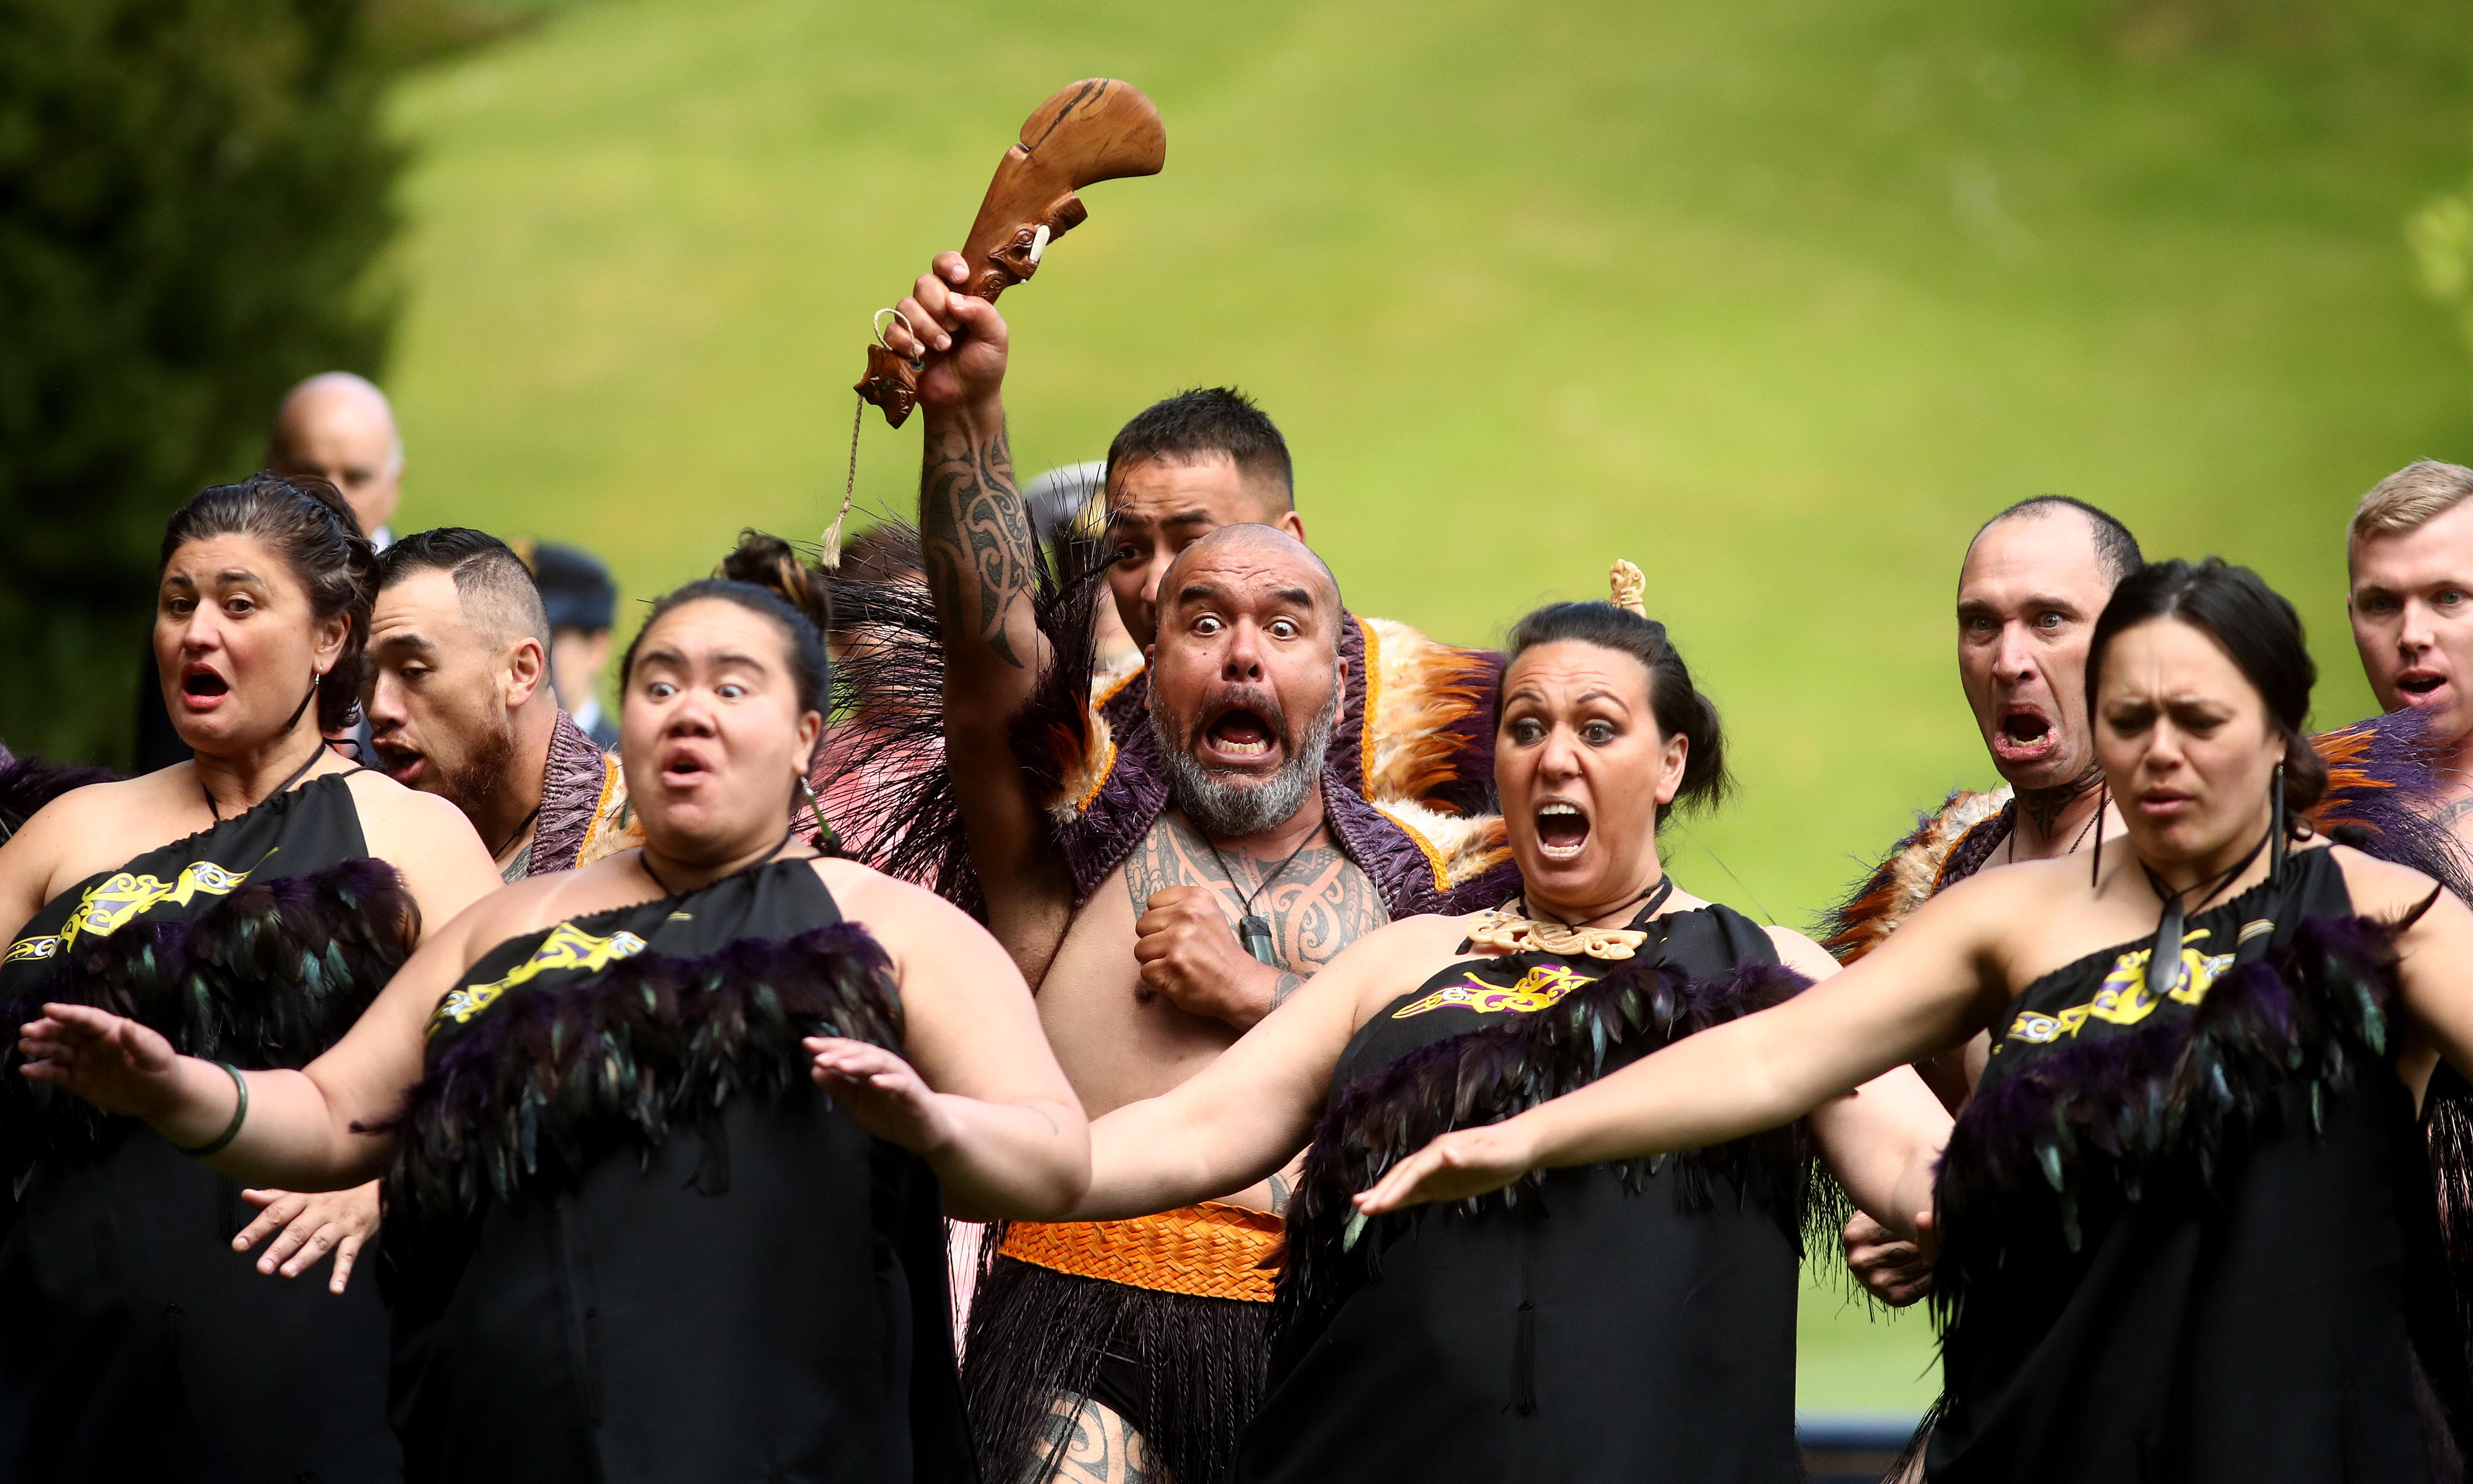 Cultural appropriation of Māori traditions is an exercise in entitlement and privilege